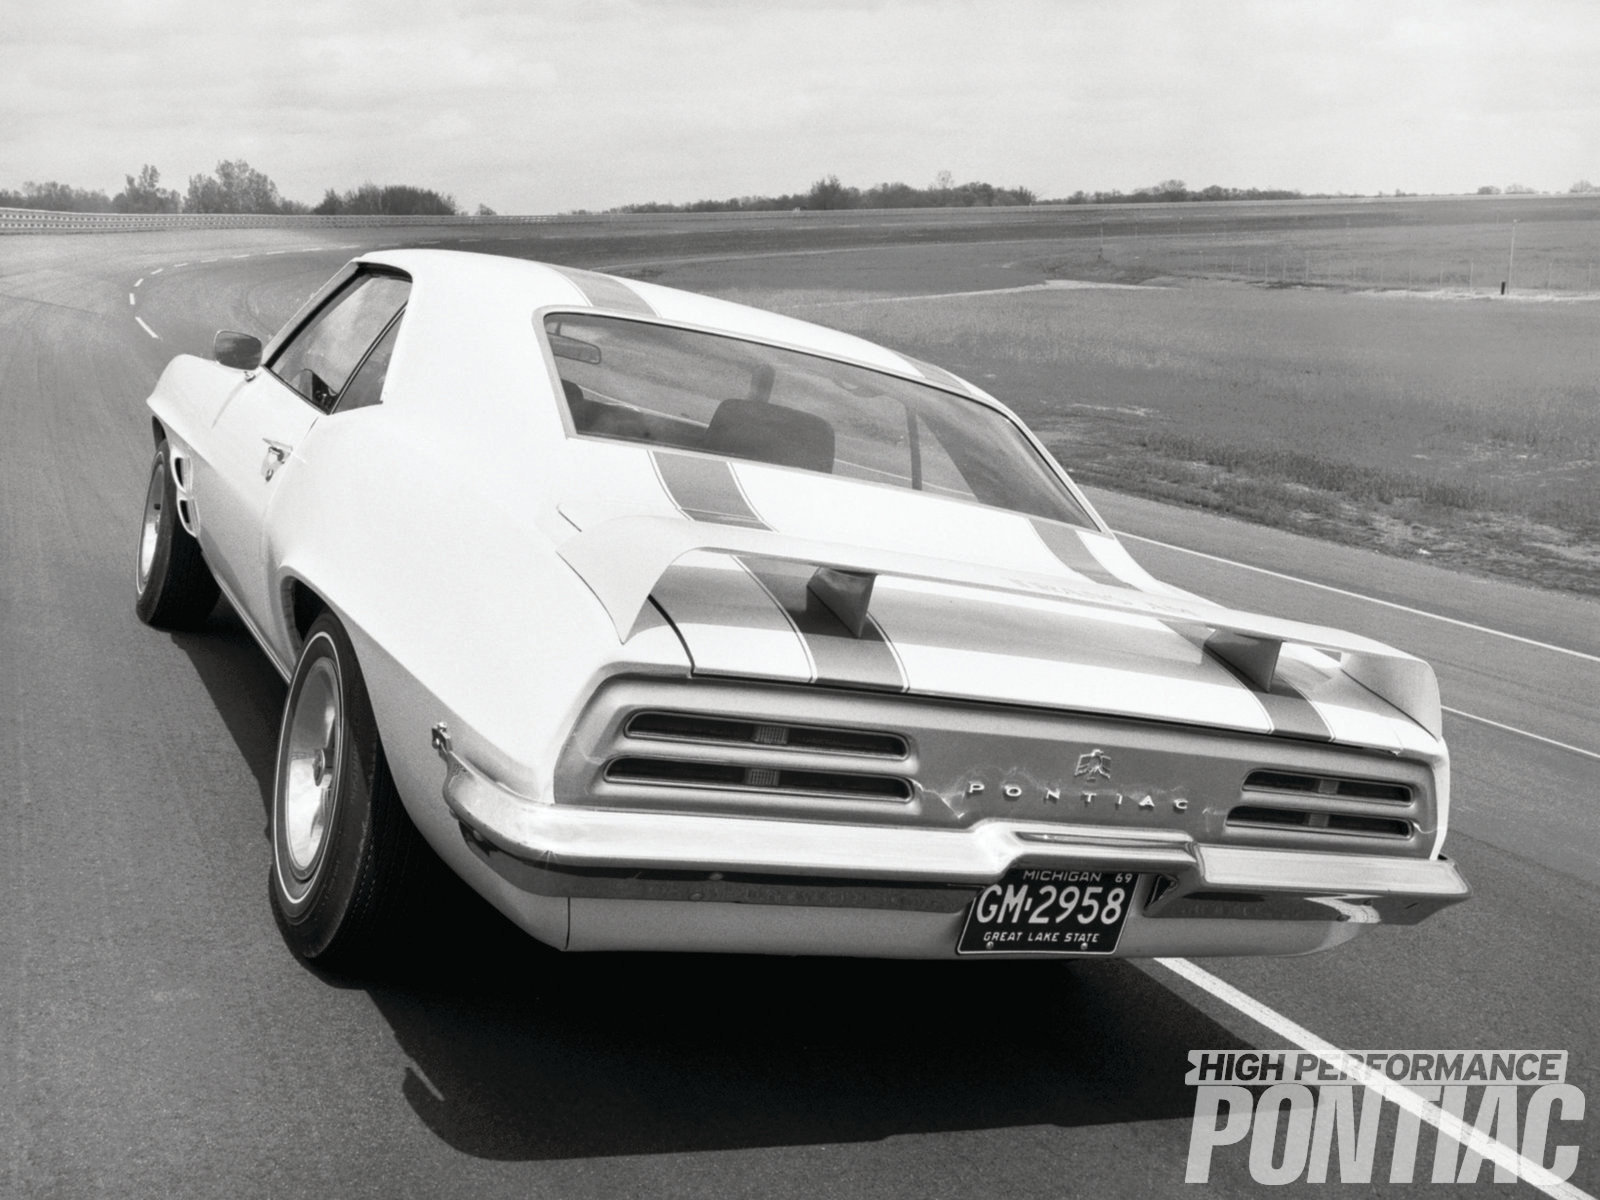 "Pontiac made much ado about the '69 Trans Am's rear wing. In a press release given to journalists at the 1969 Chicago Auto Show, it declared, ""The most striking styling feature of the new Trans Am will be a floating 60-inch air foil spanning the rear deck."""